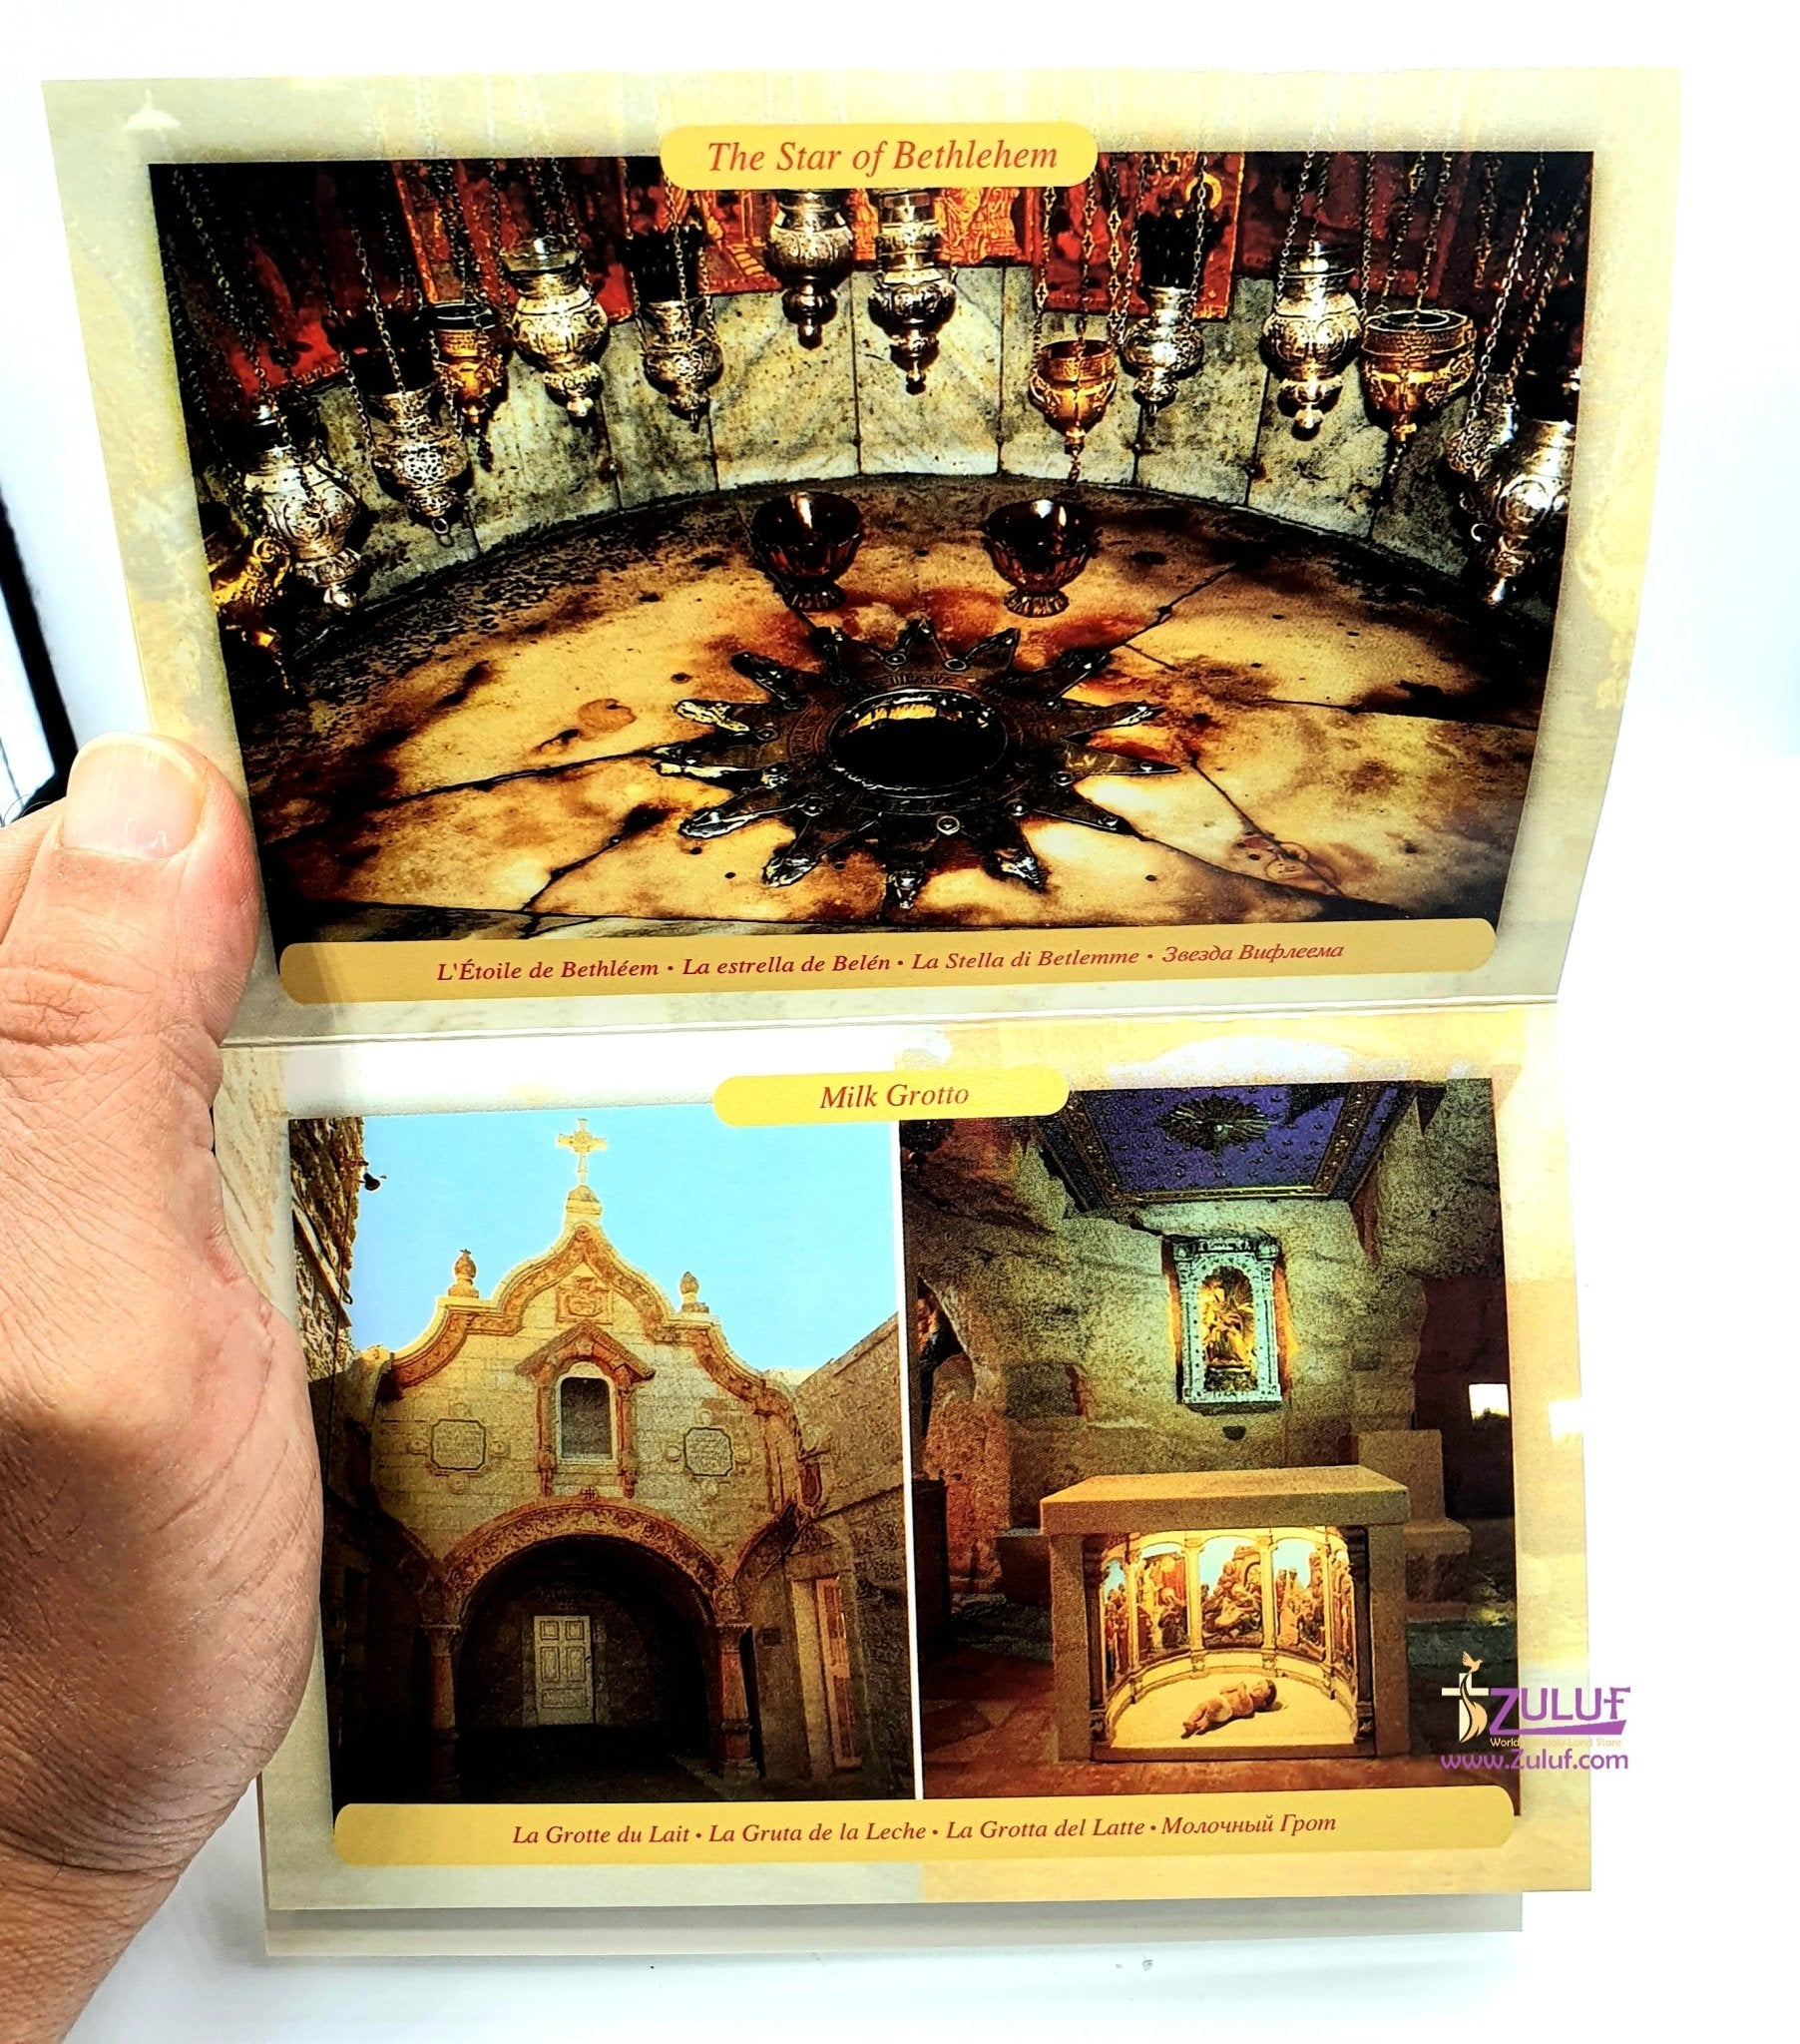 Holy Land Pictures & Sites in Bethlehem - 10 PostCards in 1 HLG212 - with Zuluf Certificate - Zuluf